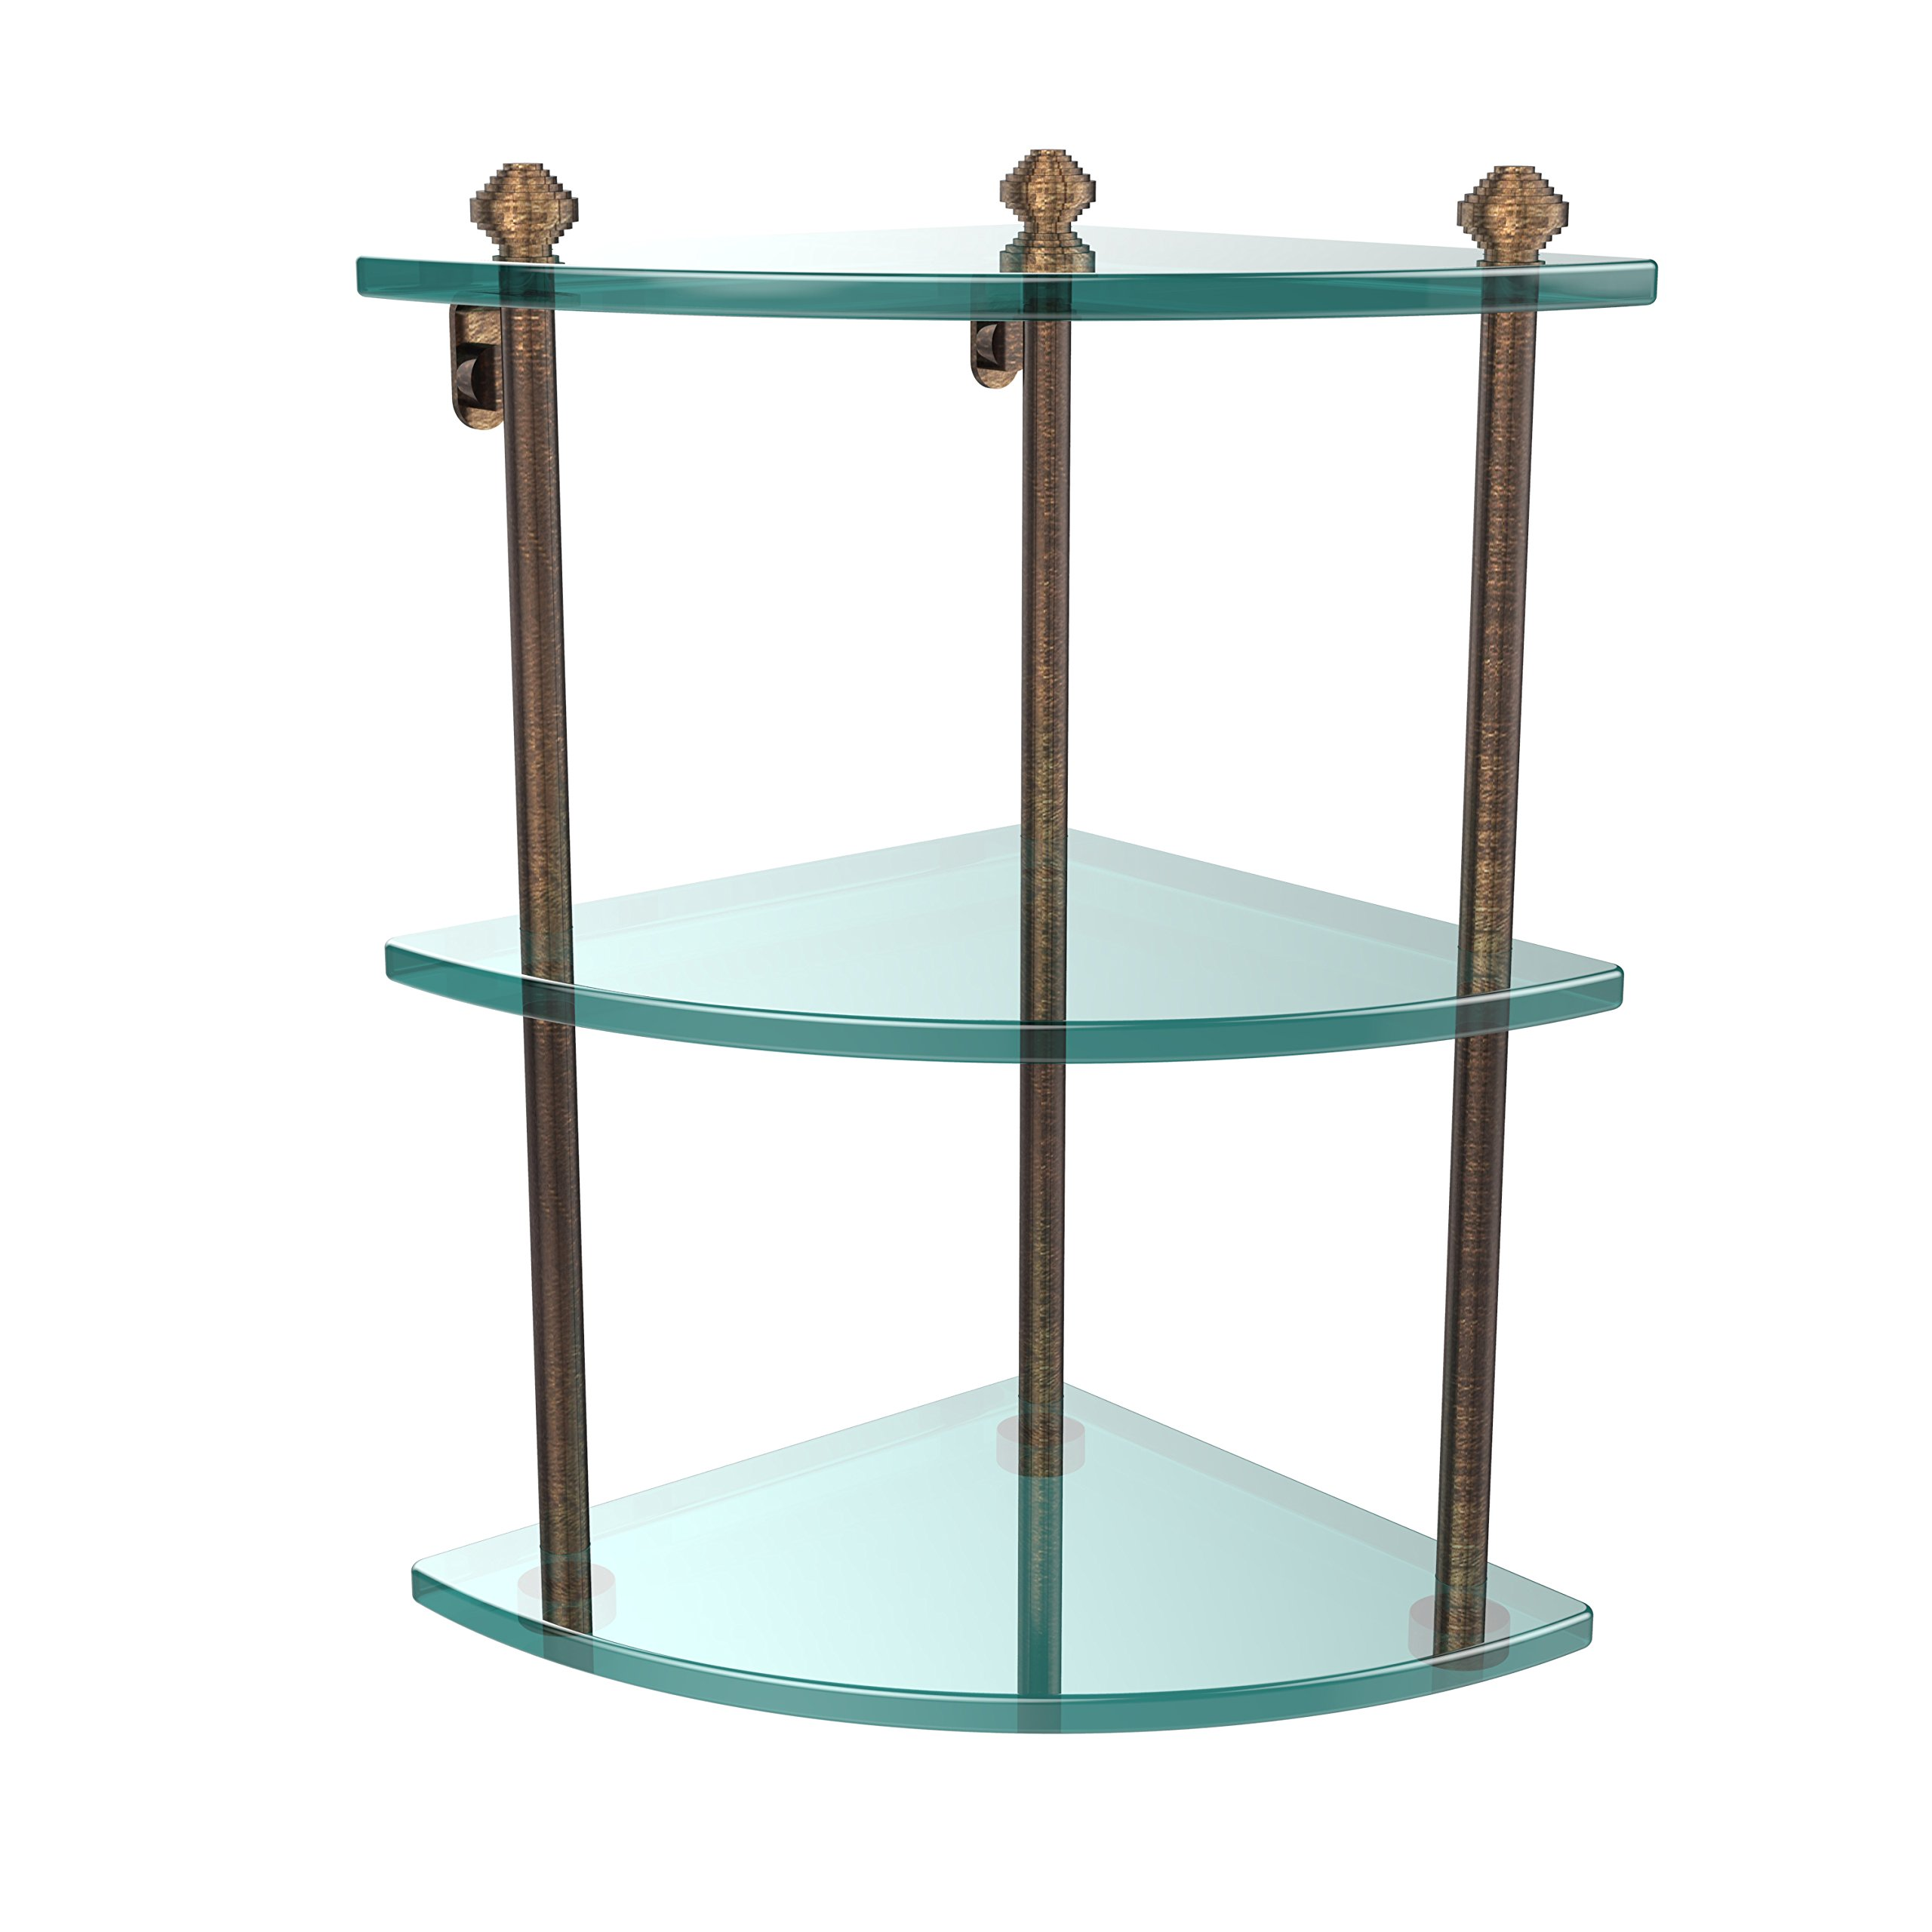 Allied Brass SB-6-SCH Double Corner Glass Shelf Polished Brass